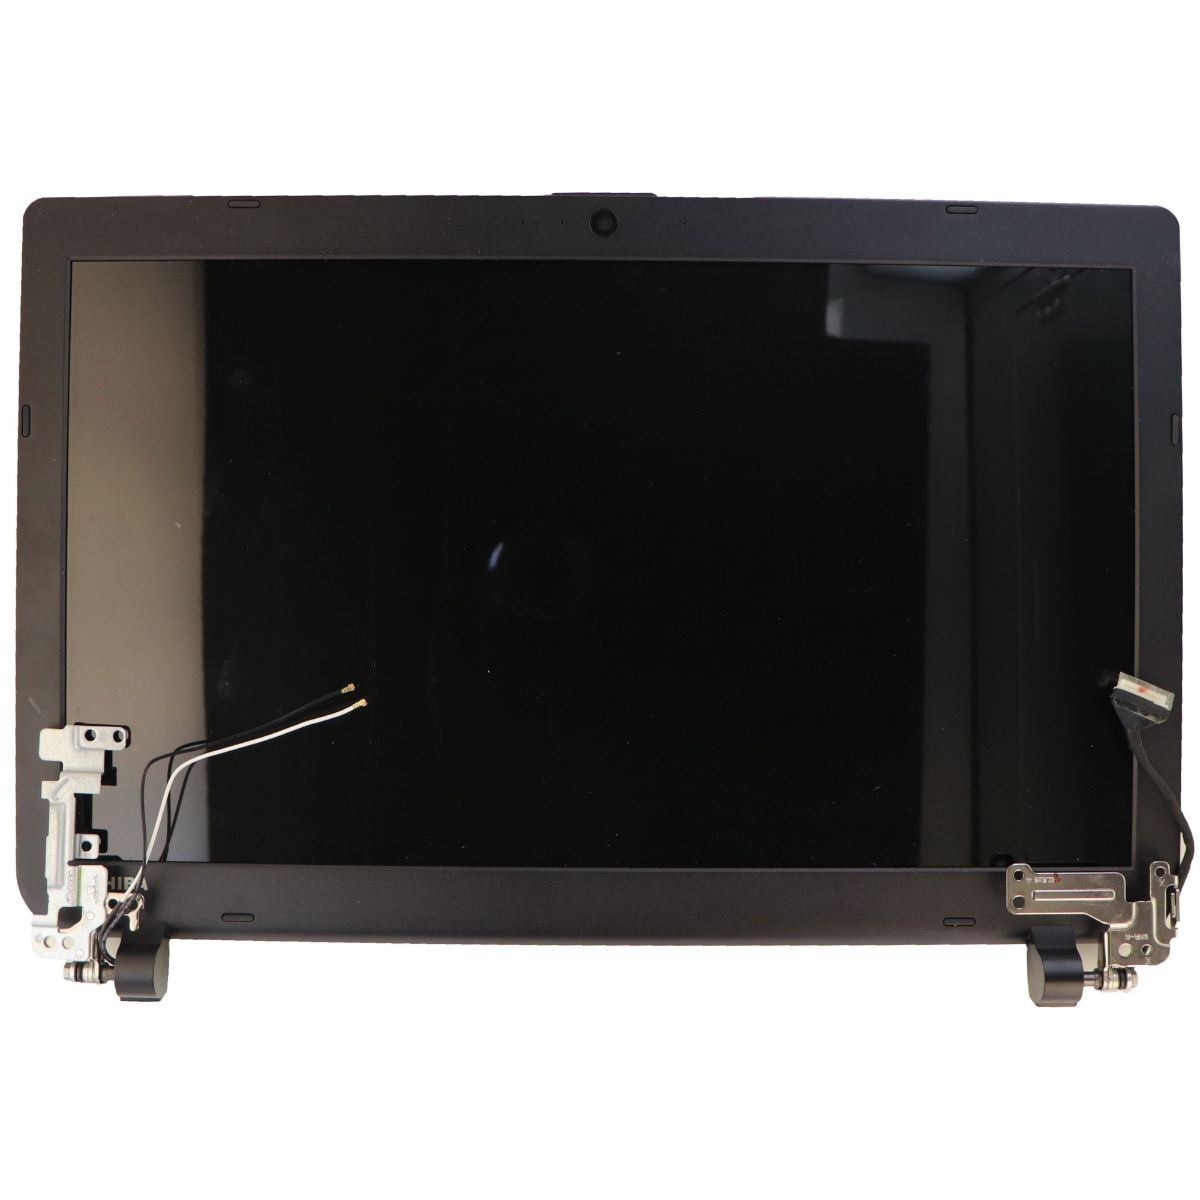 Toshiba Satellite C55-B5270D 15.6 LCD Screen and Frame with webcam - Repair Part